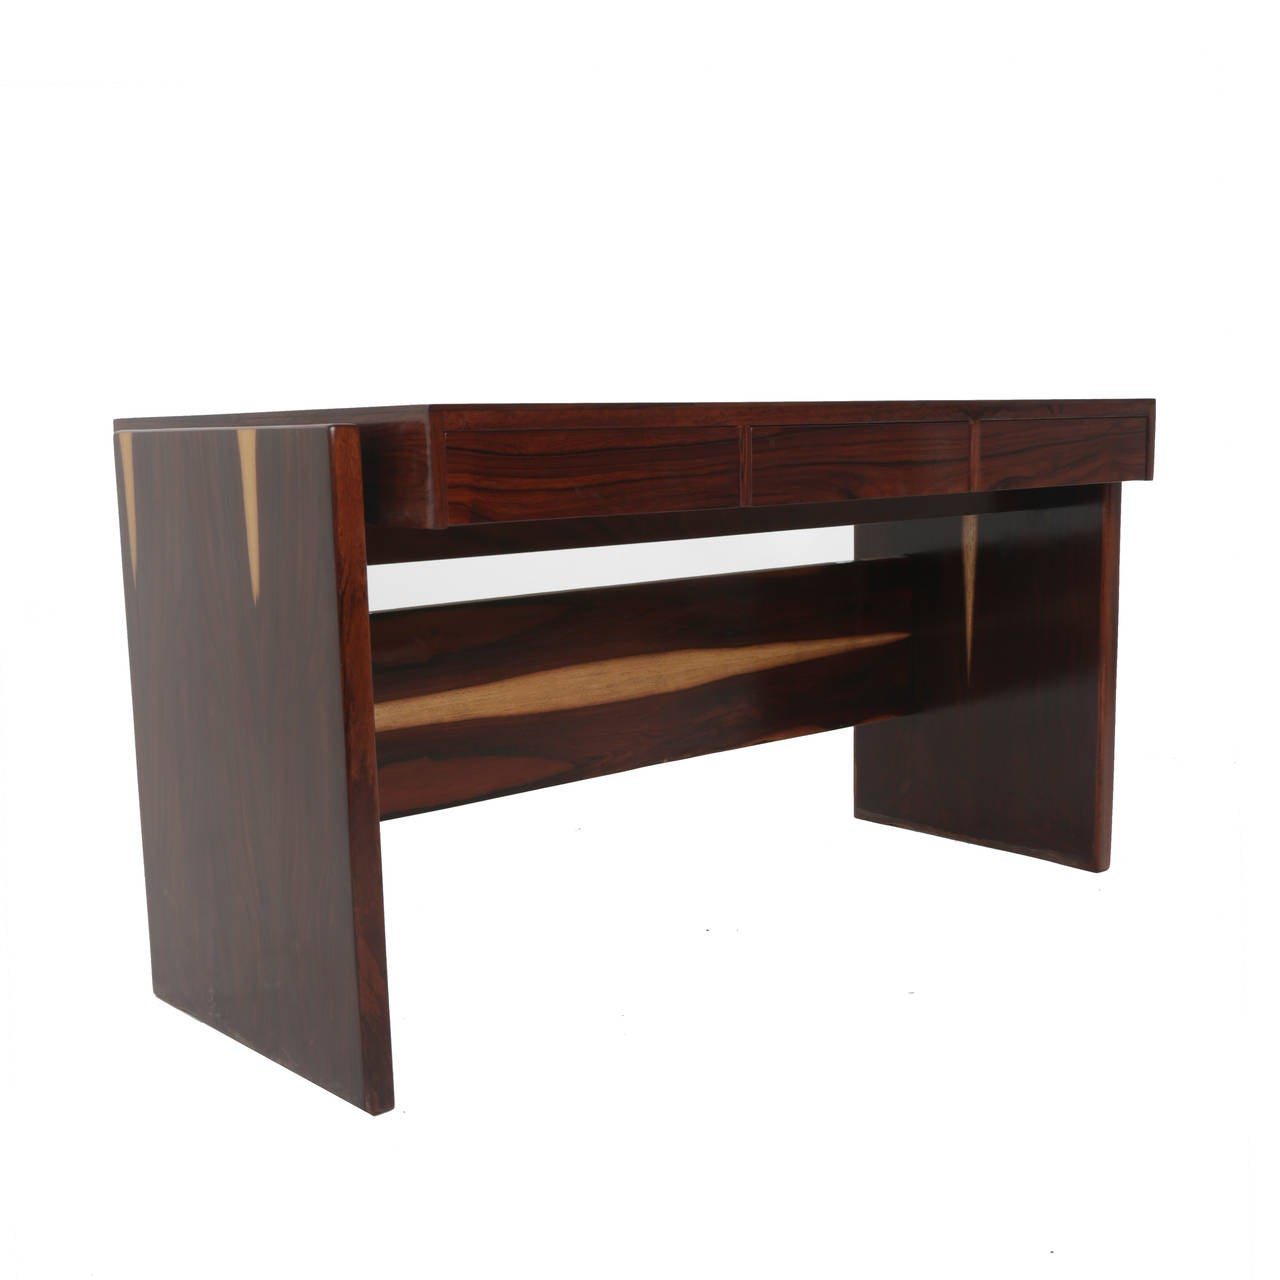 Rosewood desk designed by Brazil's Joaquim Tenreiro with a glass top and three drawers. This desk came from the Bloch, editors headquarters, a building designed by Oscar Niemeyer and with interiors furnished by Sergio Rodrigues and Joaquim